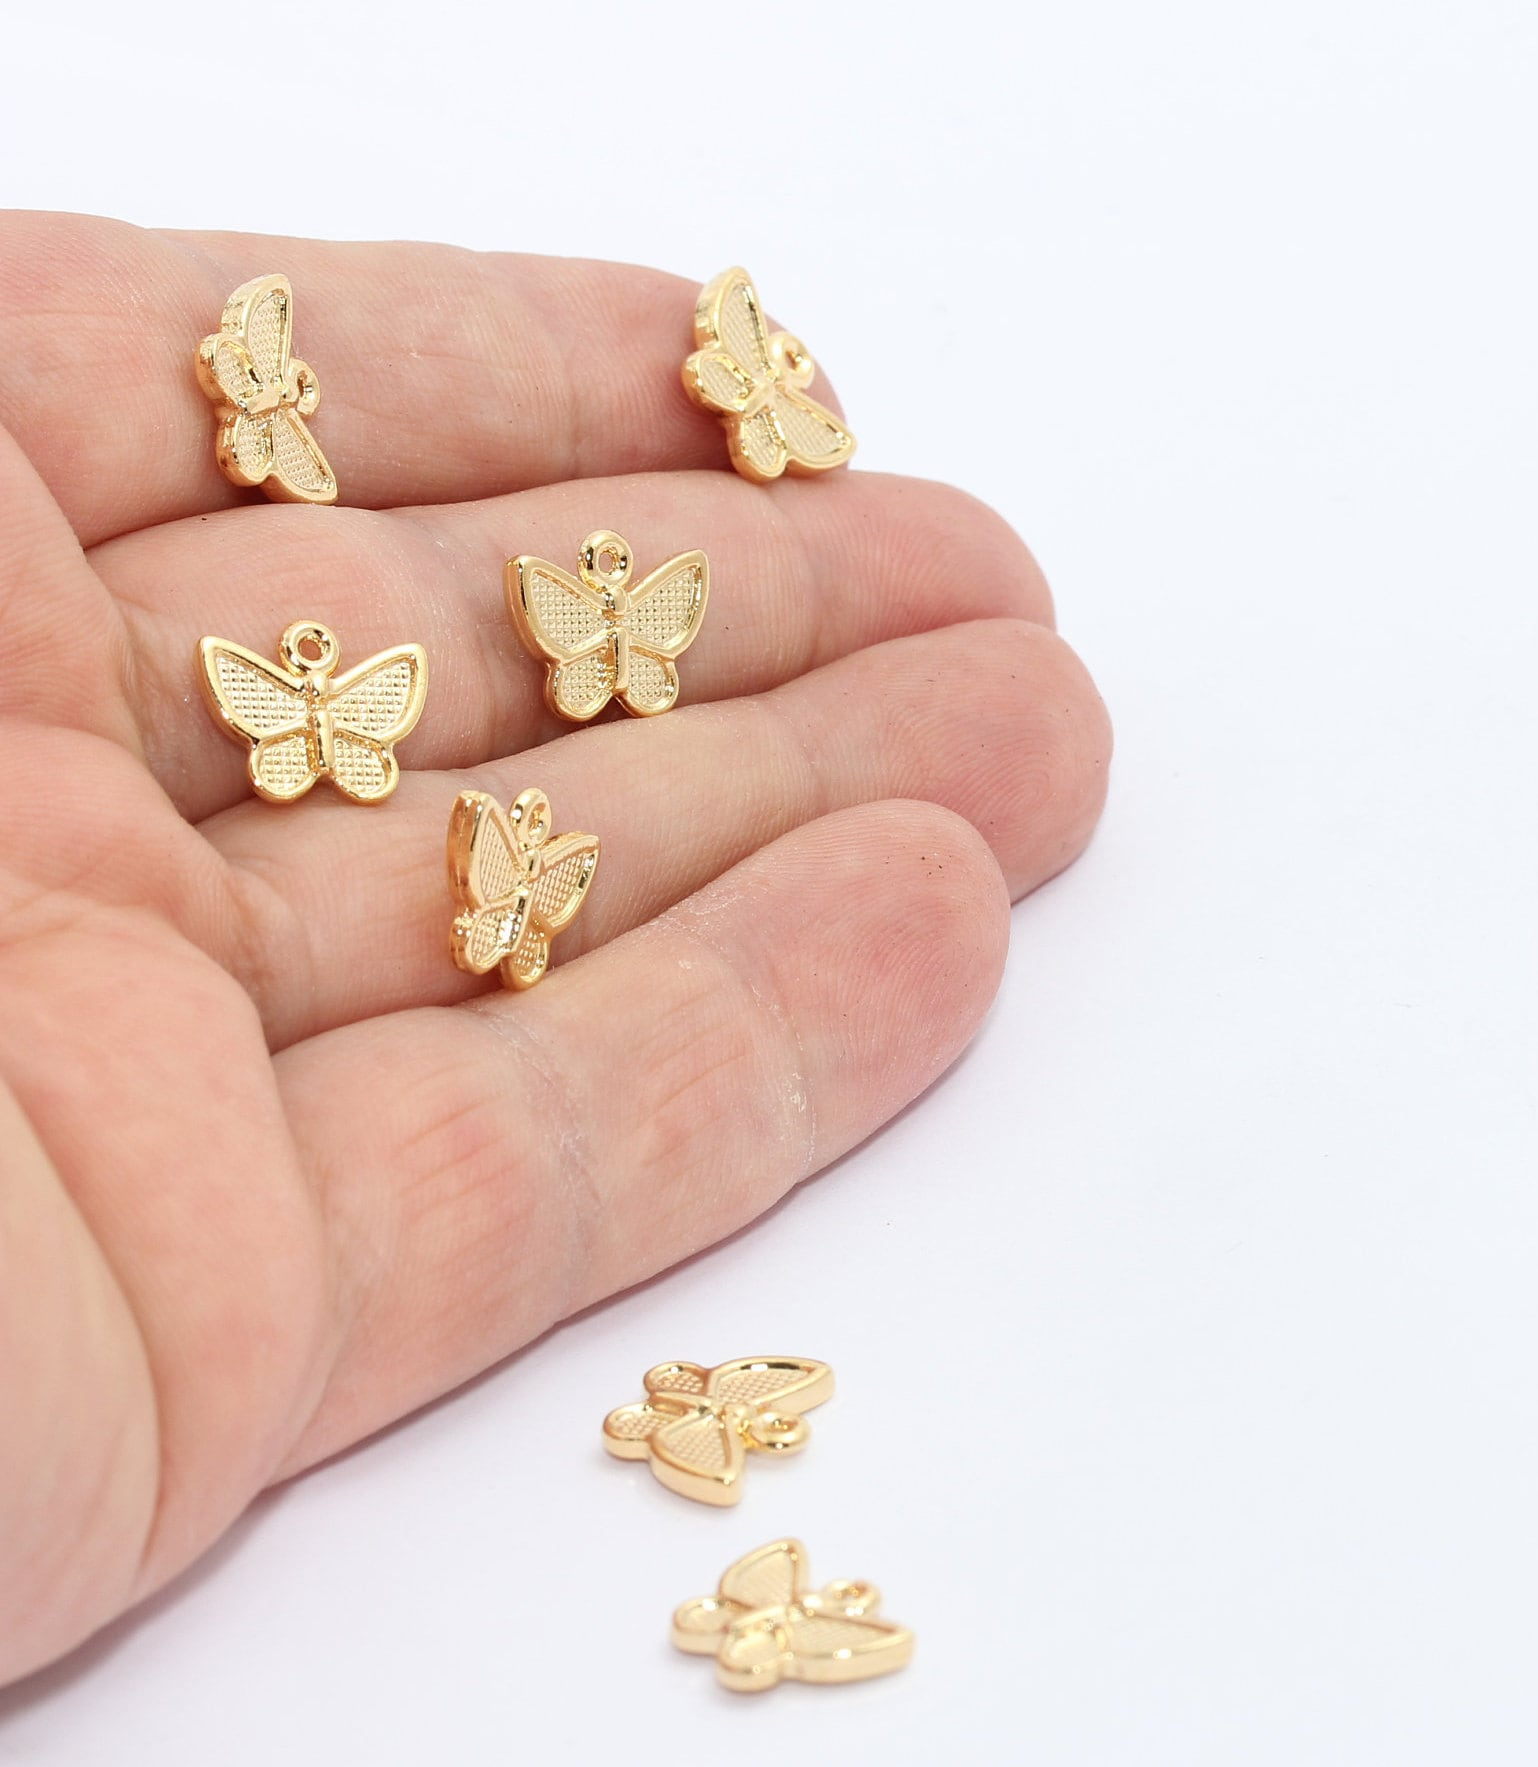 Charms 15x16 mm Pendant 1 Pieces     GM9-2 Polished Gold Plated Blue  Butterfly Pendant